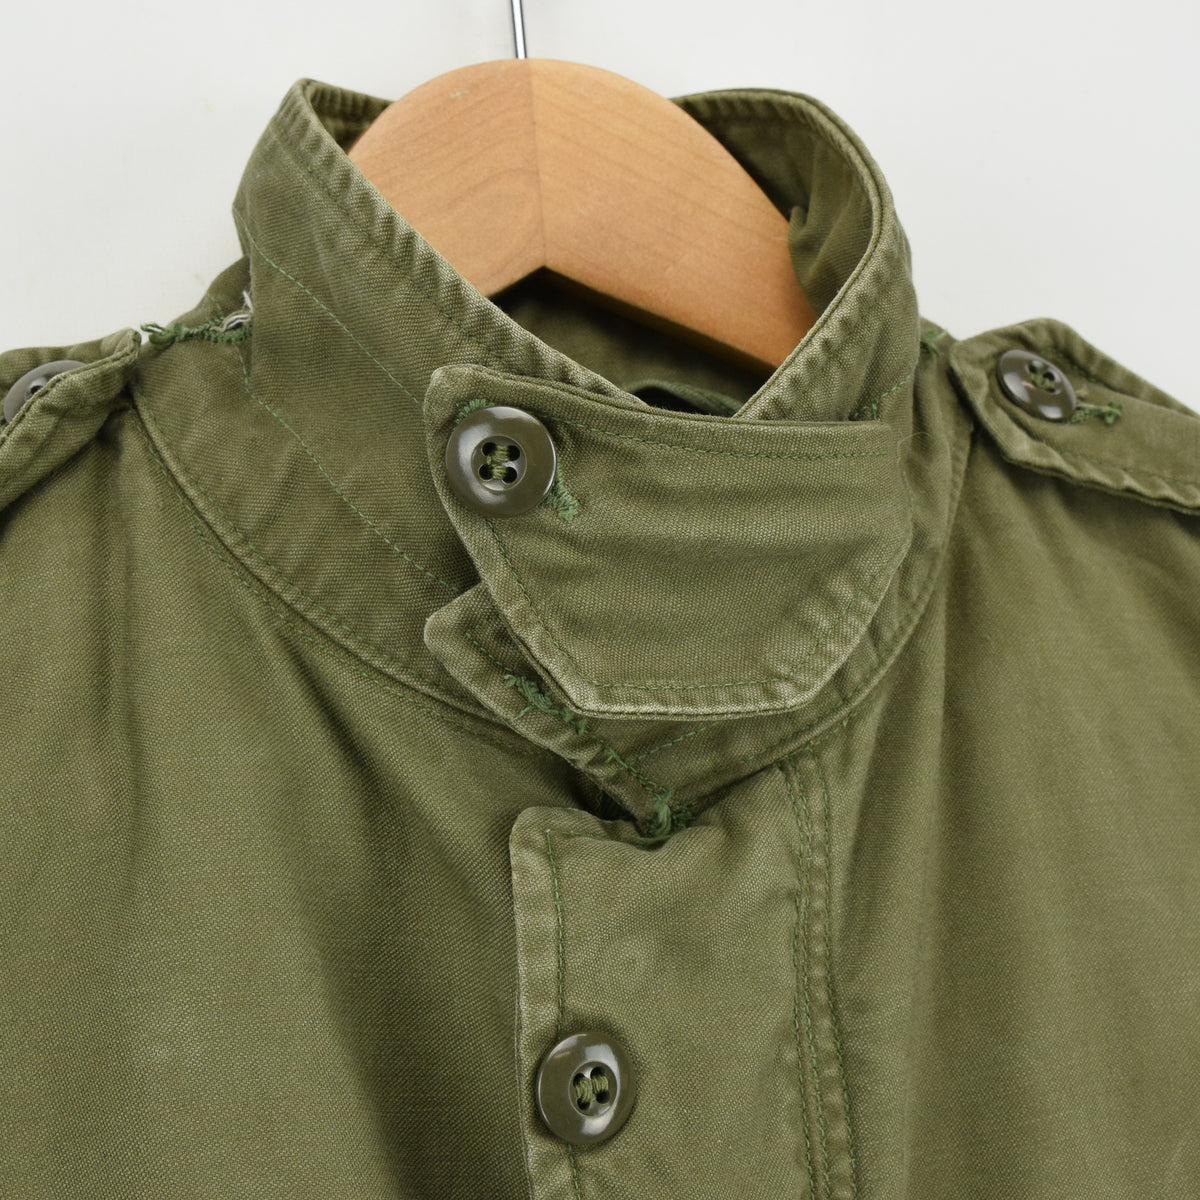 Vintage 50s M-1951 Korean War US Army Field Jacket Olive Green Conmar Zip M collar